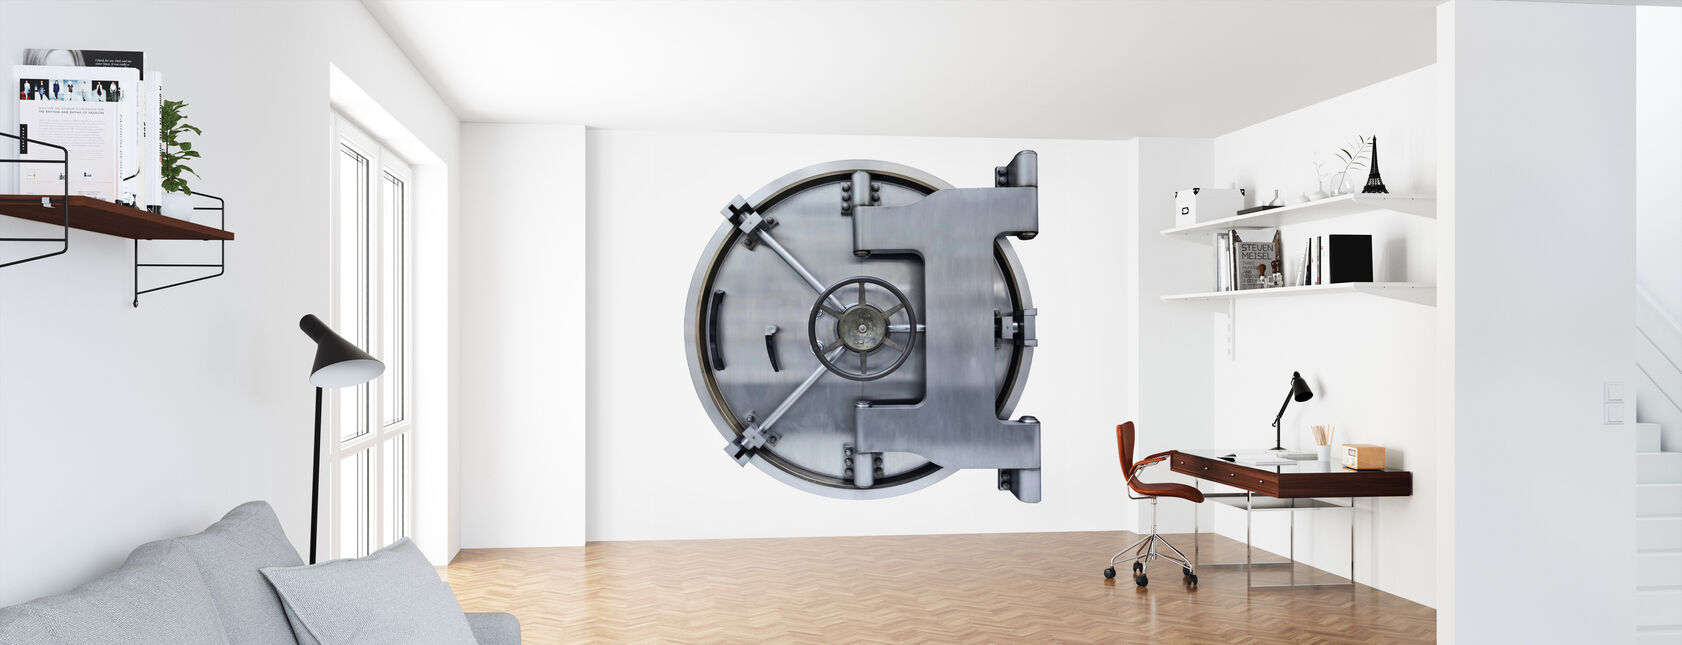 Steel Vault Door - Wallpaper - Office